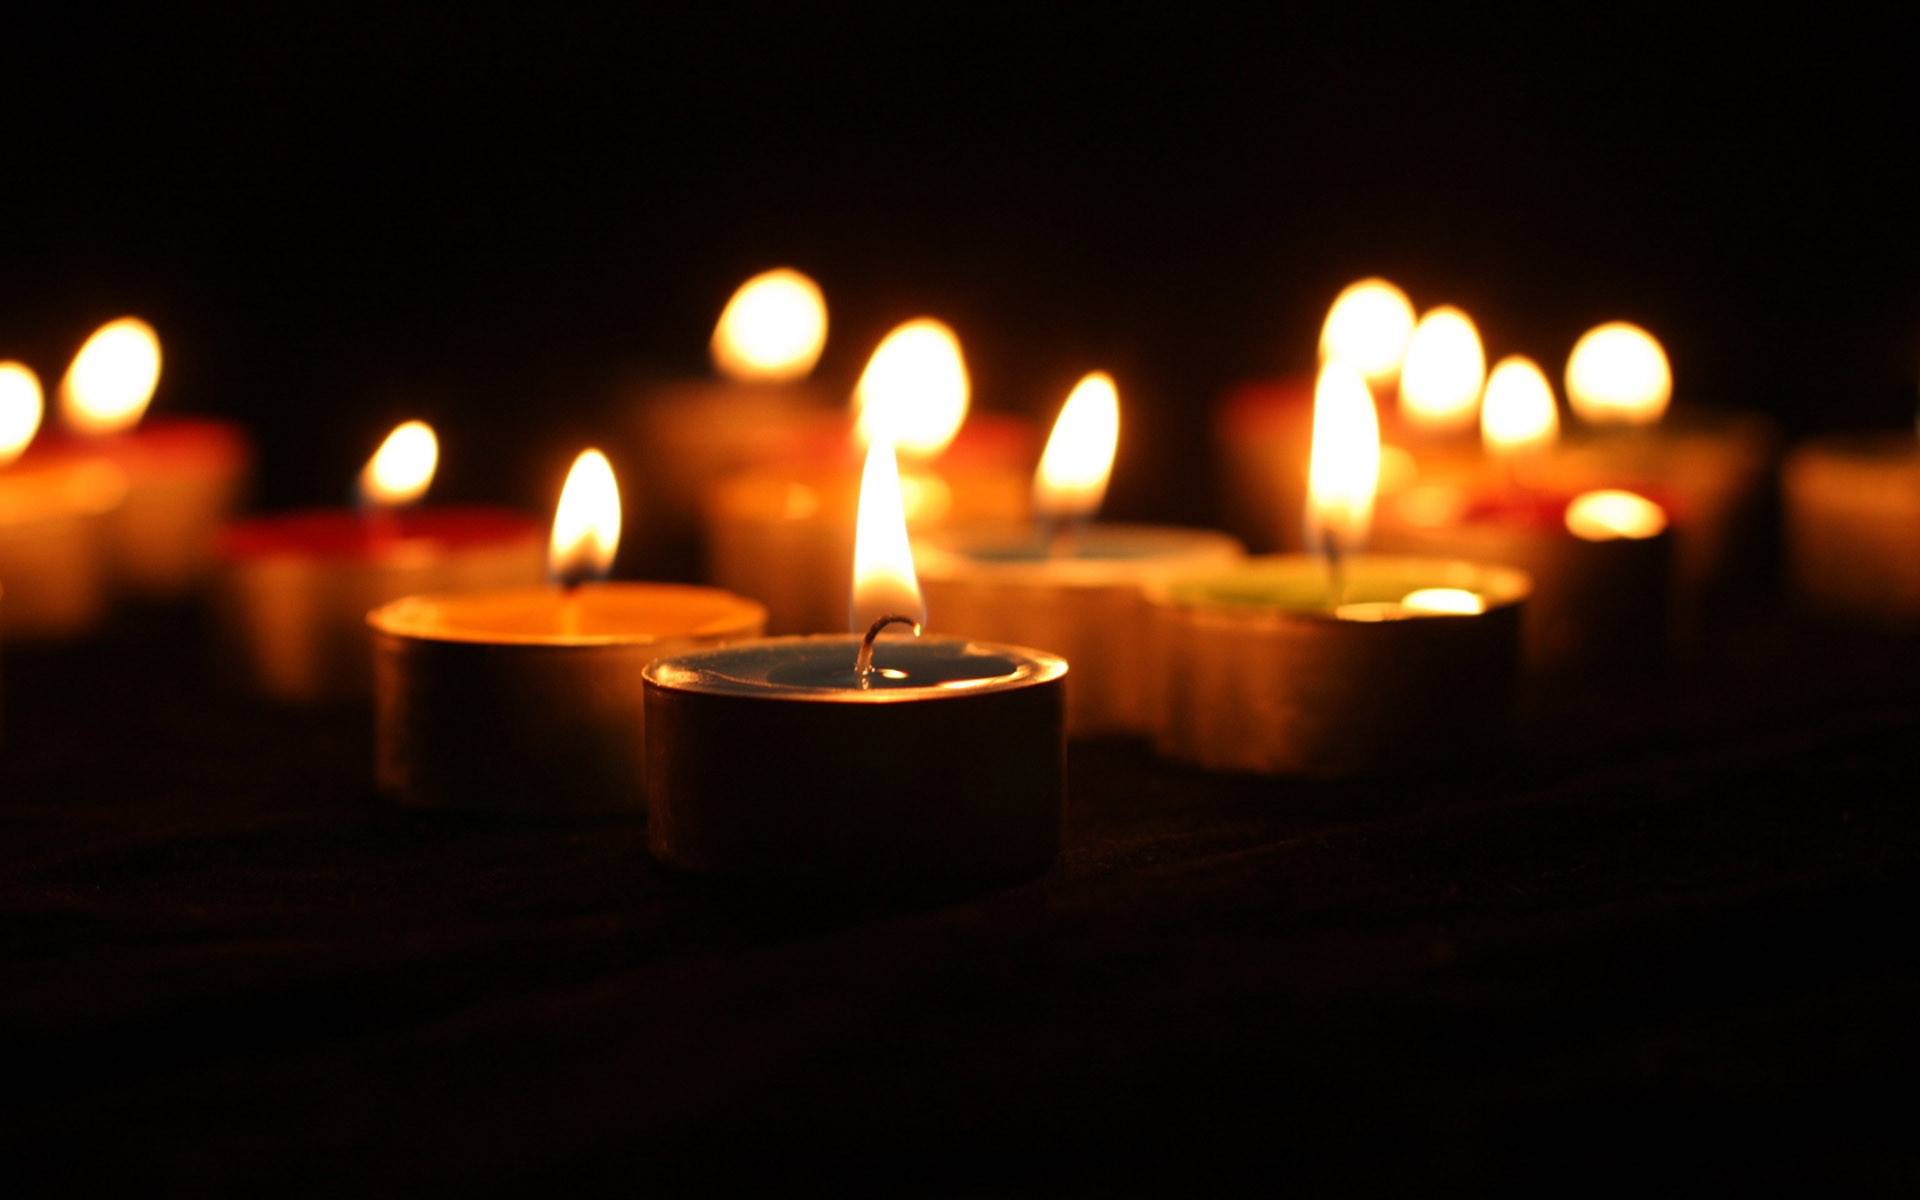 Candle wallpaper 9631